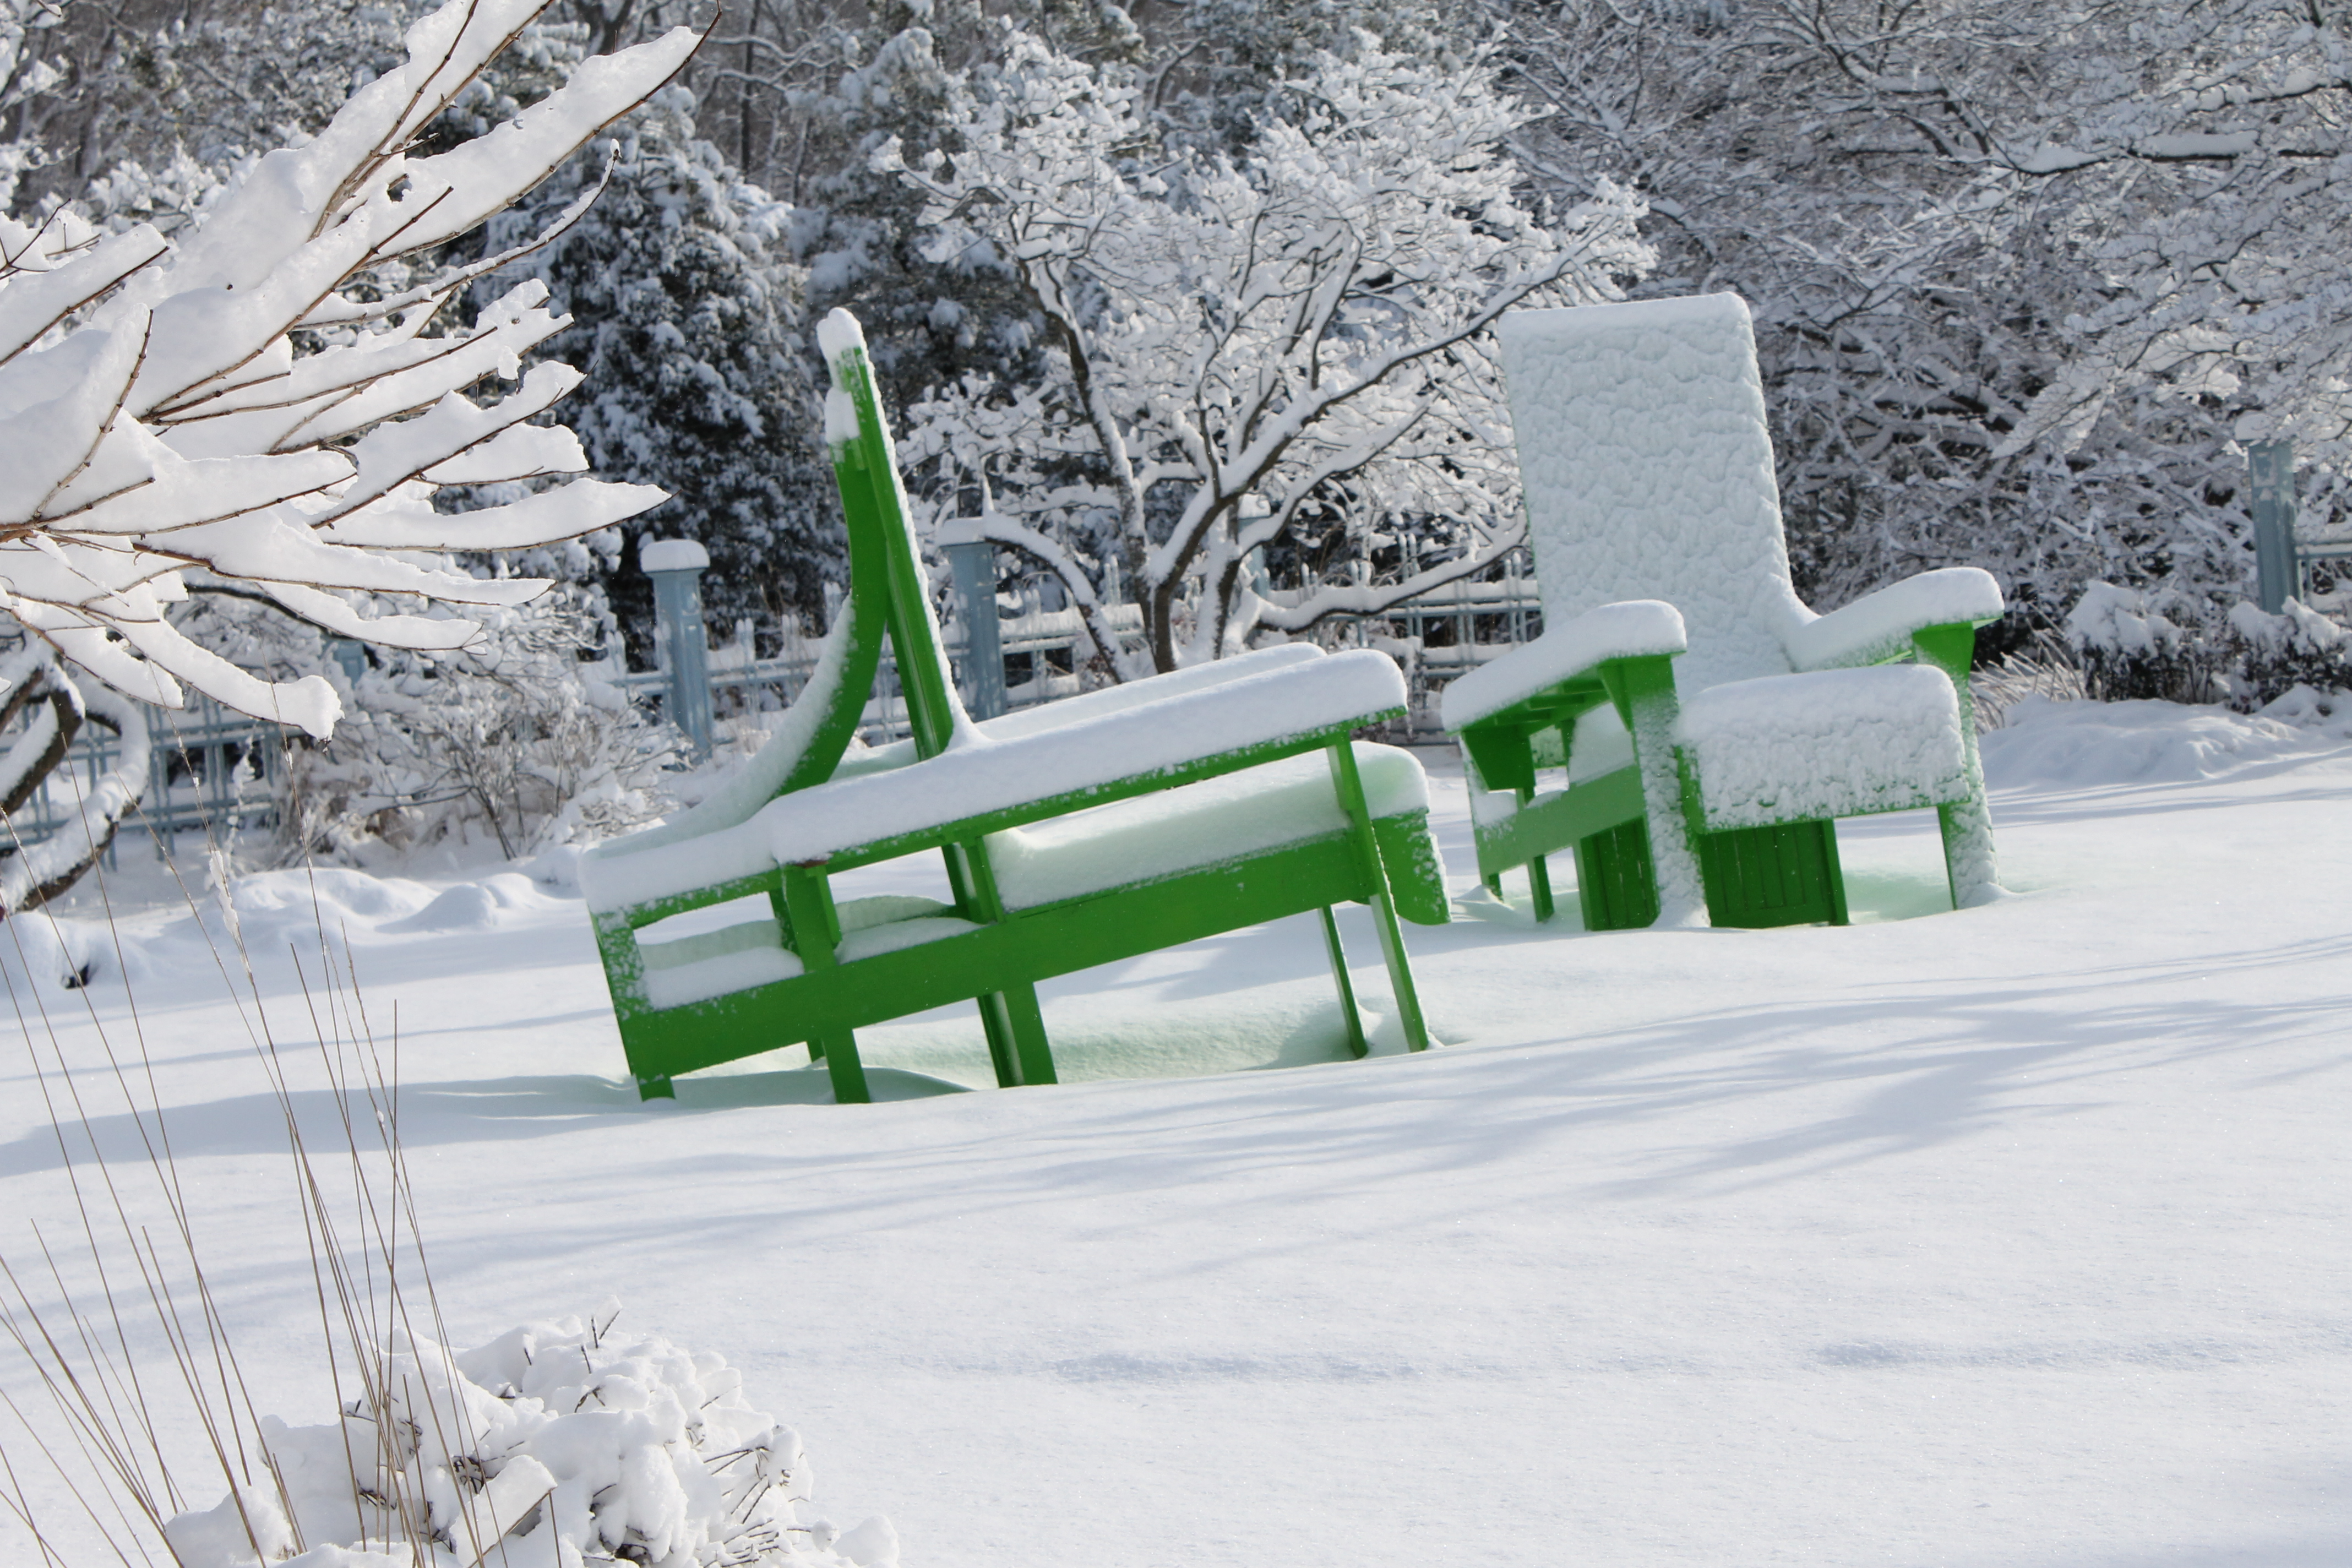 Snow on the big green chairs.